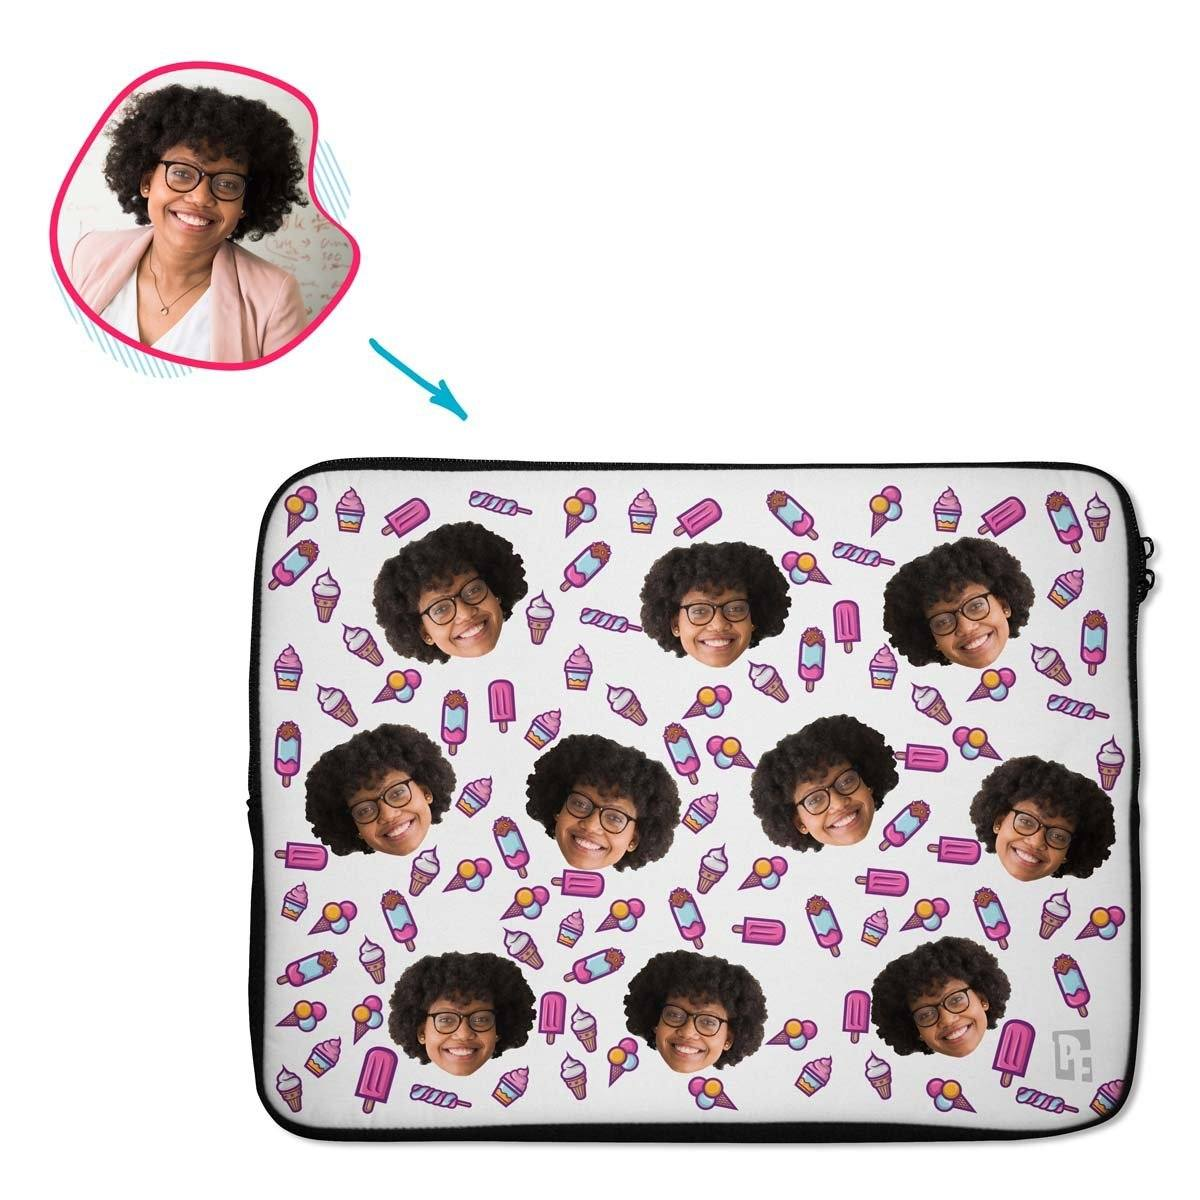 white Candies laptop sleeve personalized with photo of face printed on them